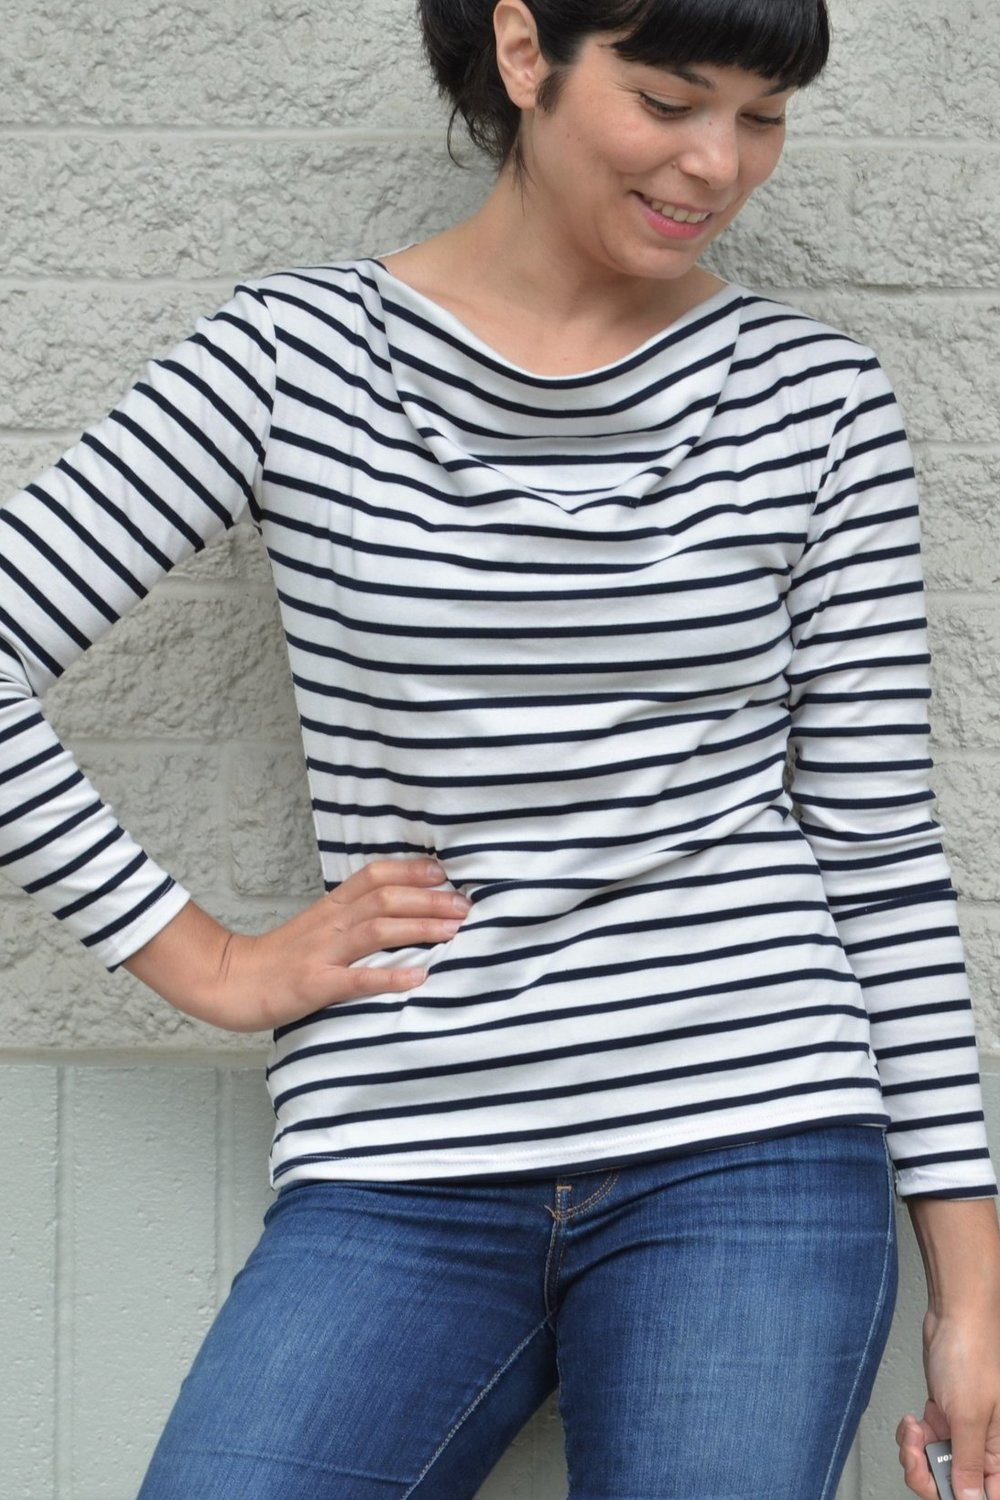 Rebecca Cowl neck top from DG Patterns